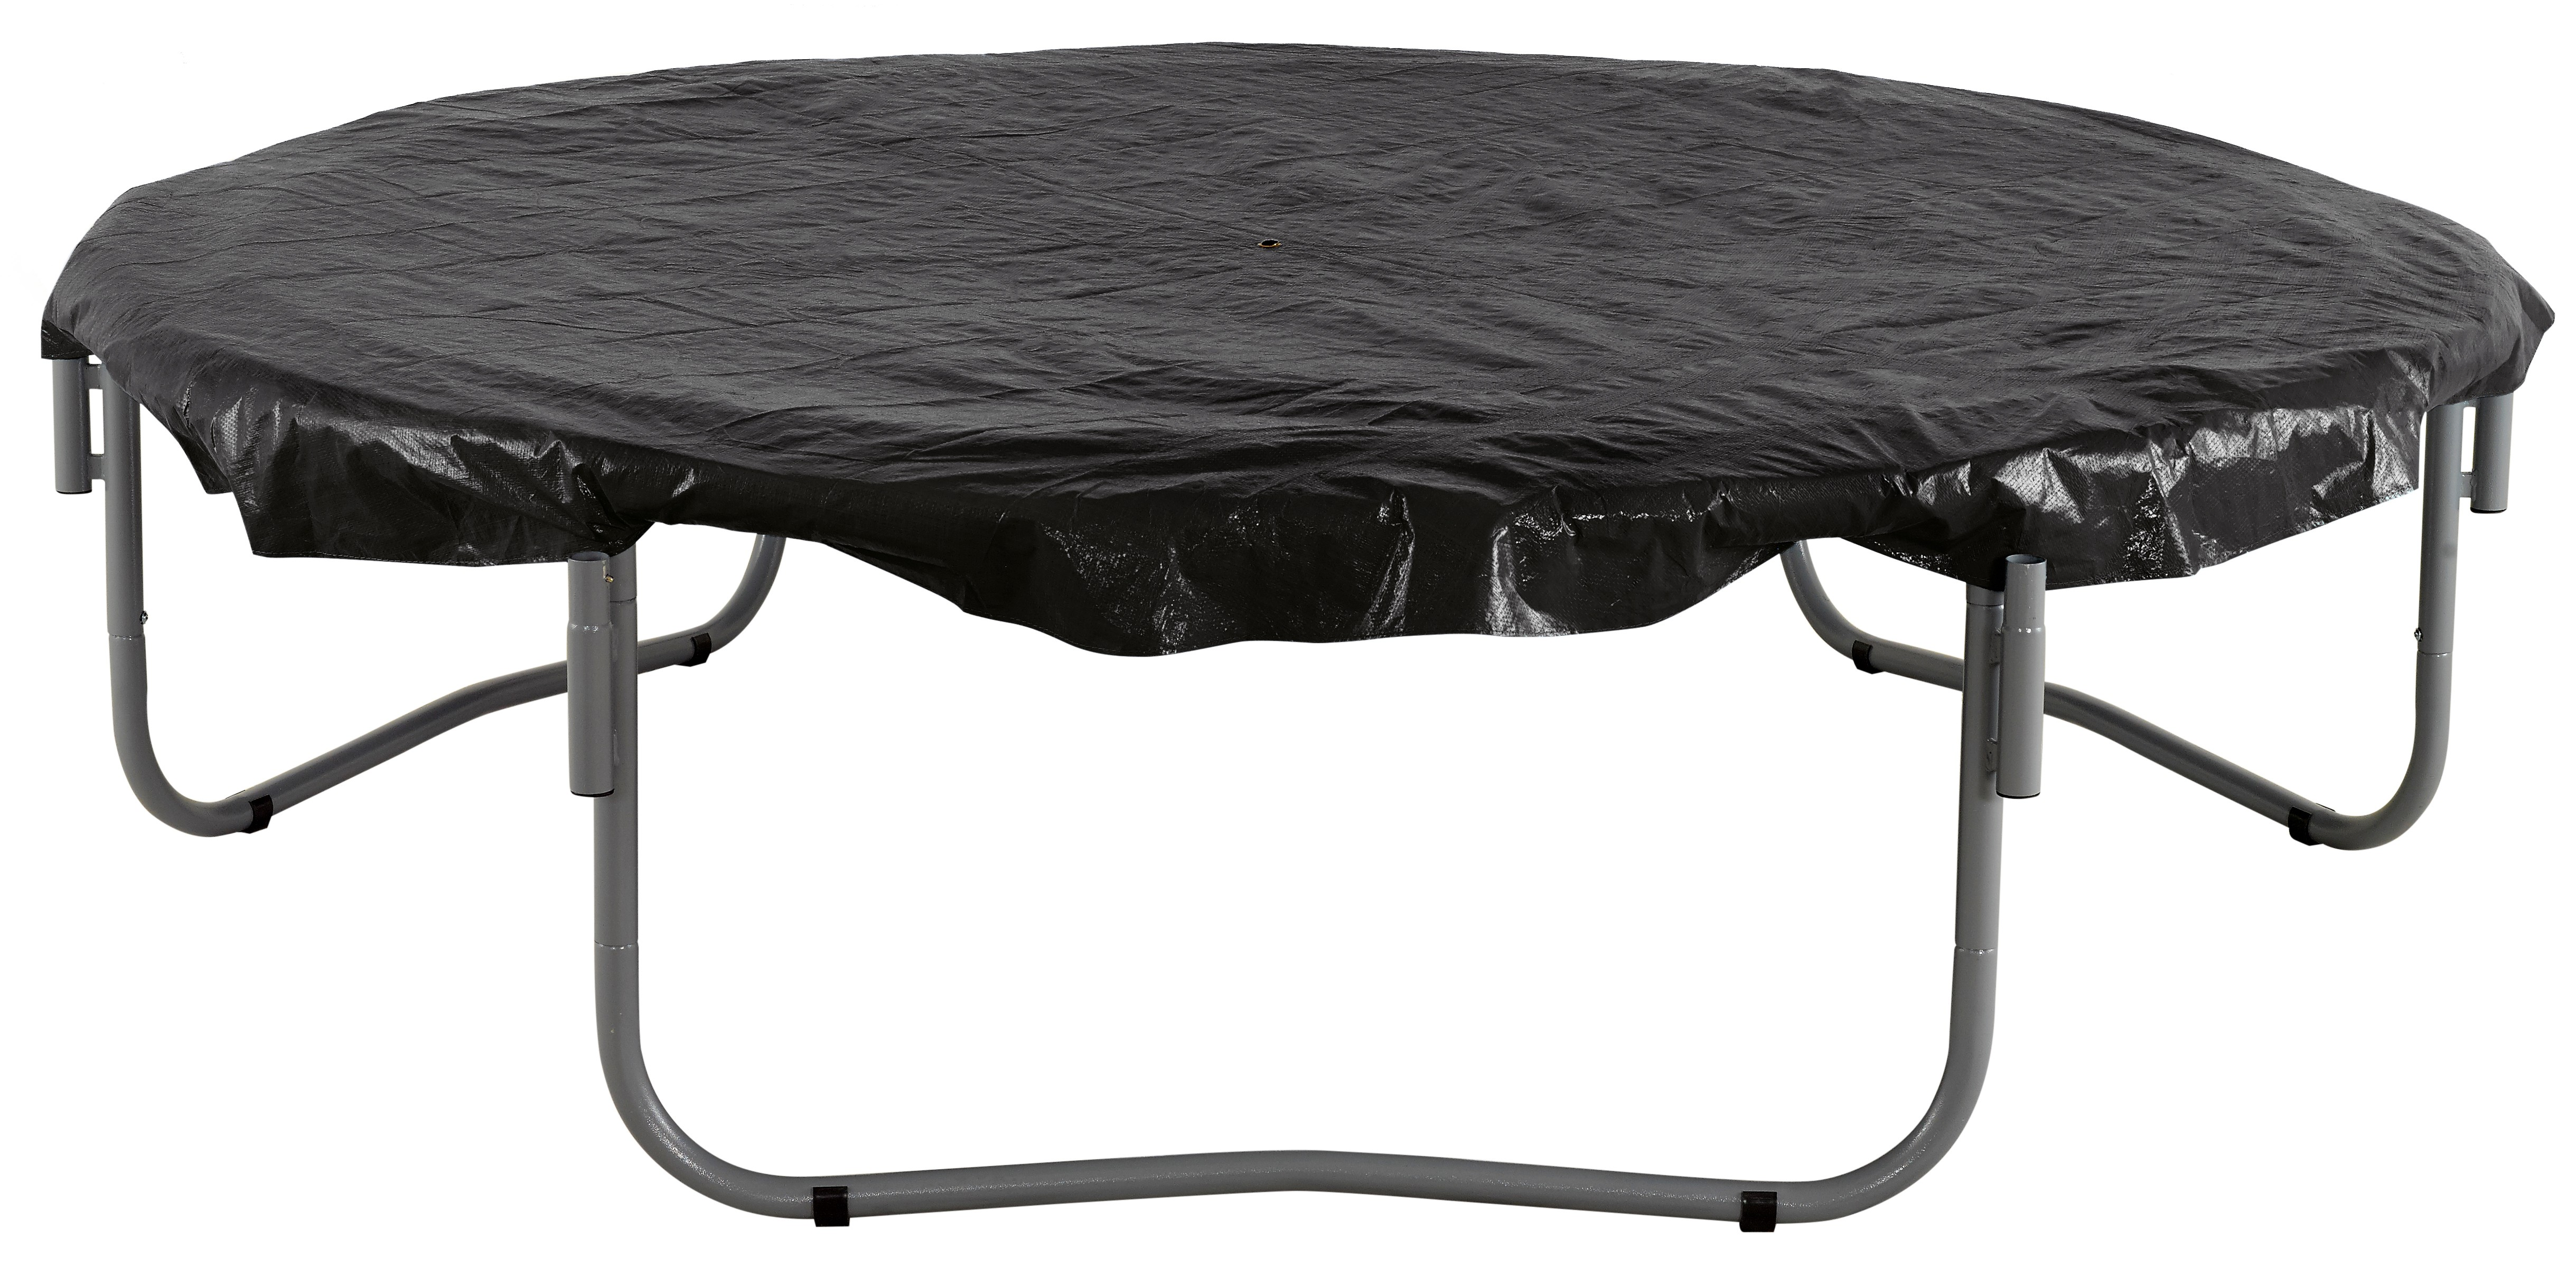 14ft Trampoline Cover - Waterproof and UV Cover for Weather, Wind, Rain Protection of Round Trampolines - Black